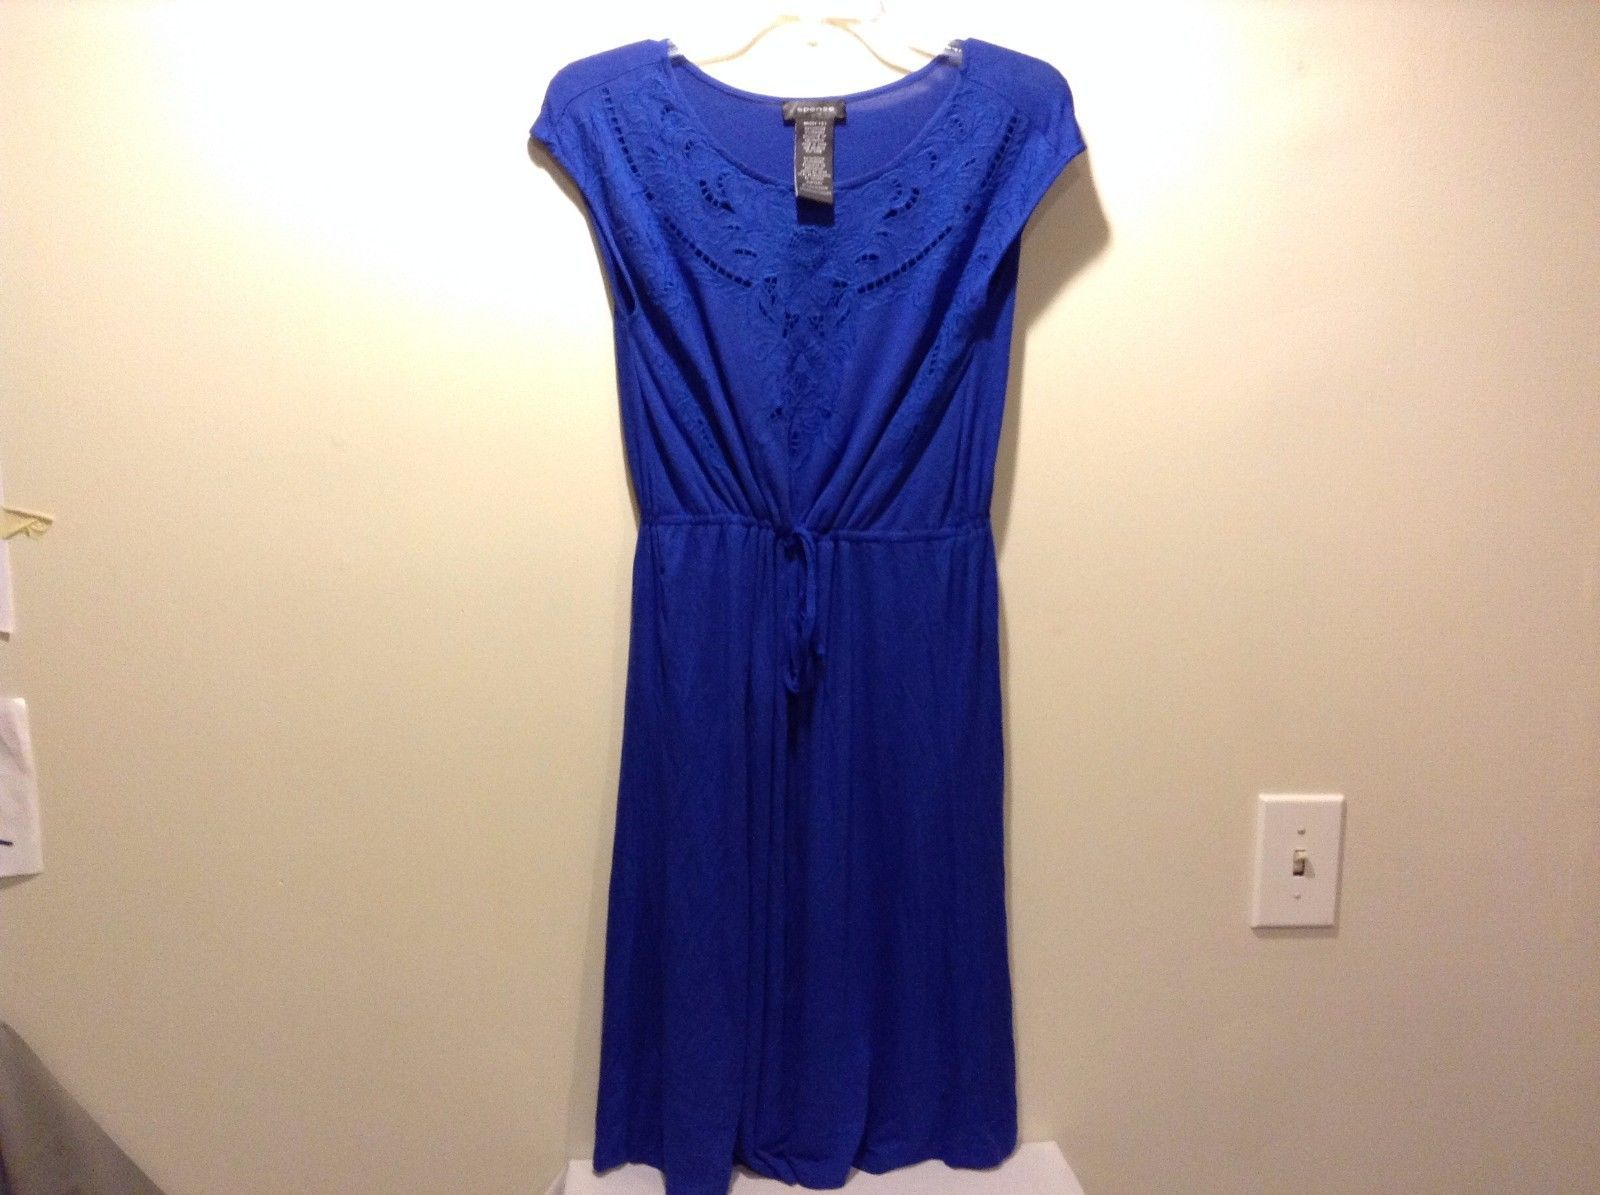 Women's Used Great Condition Royal Blue Flower Embroidery Spense Small Dress